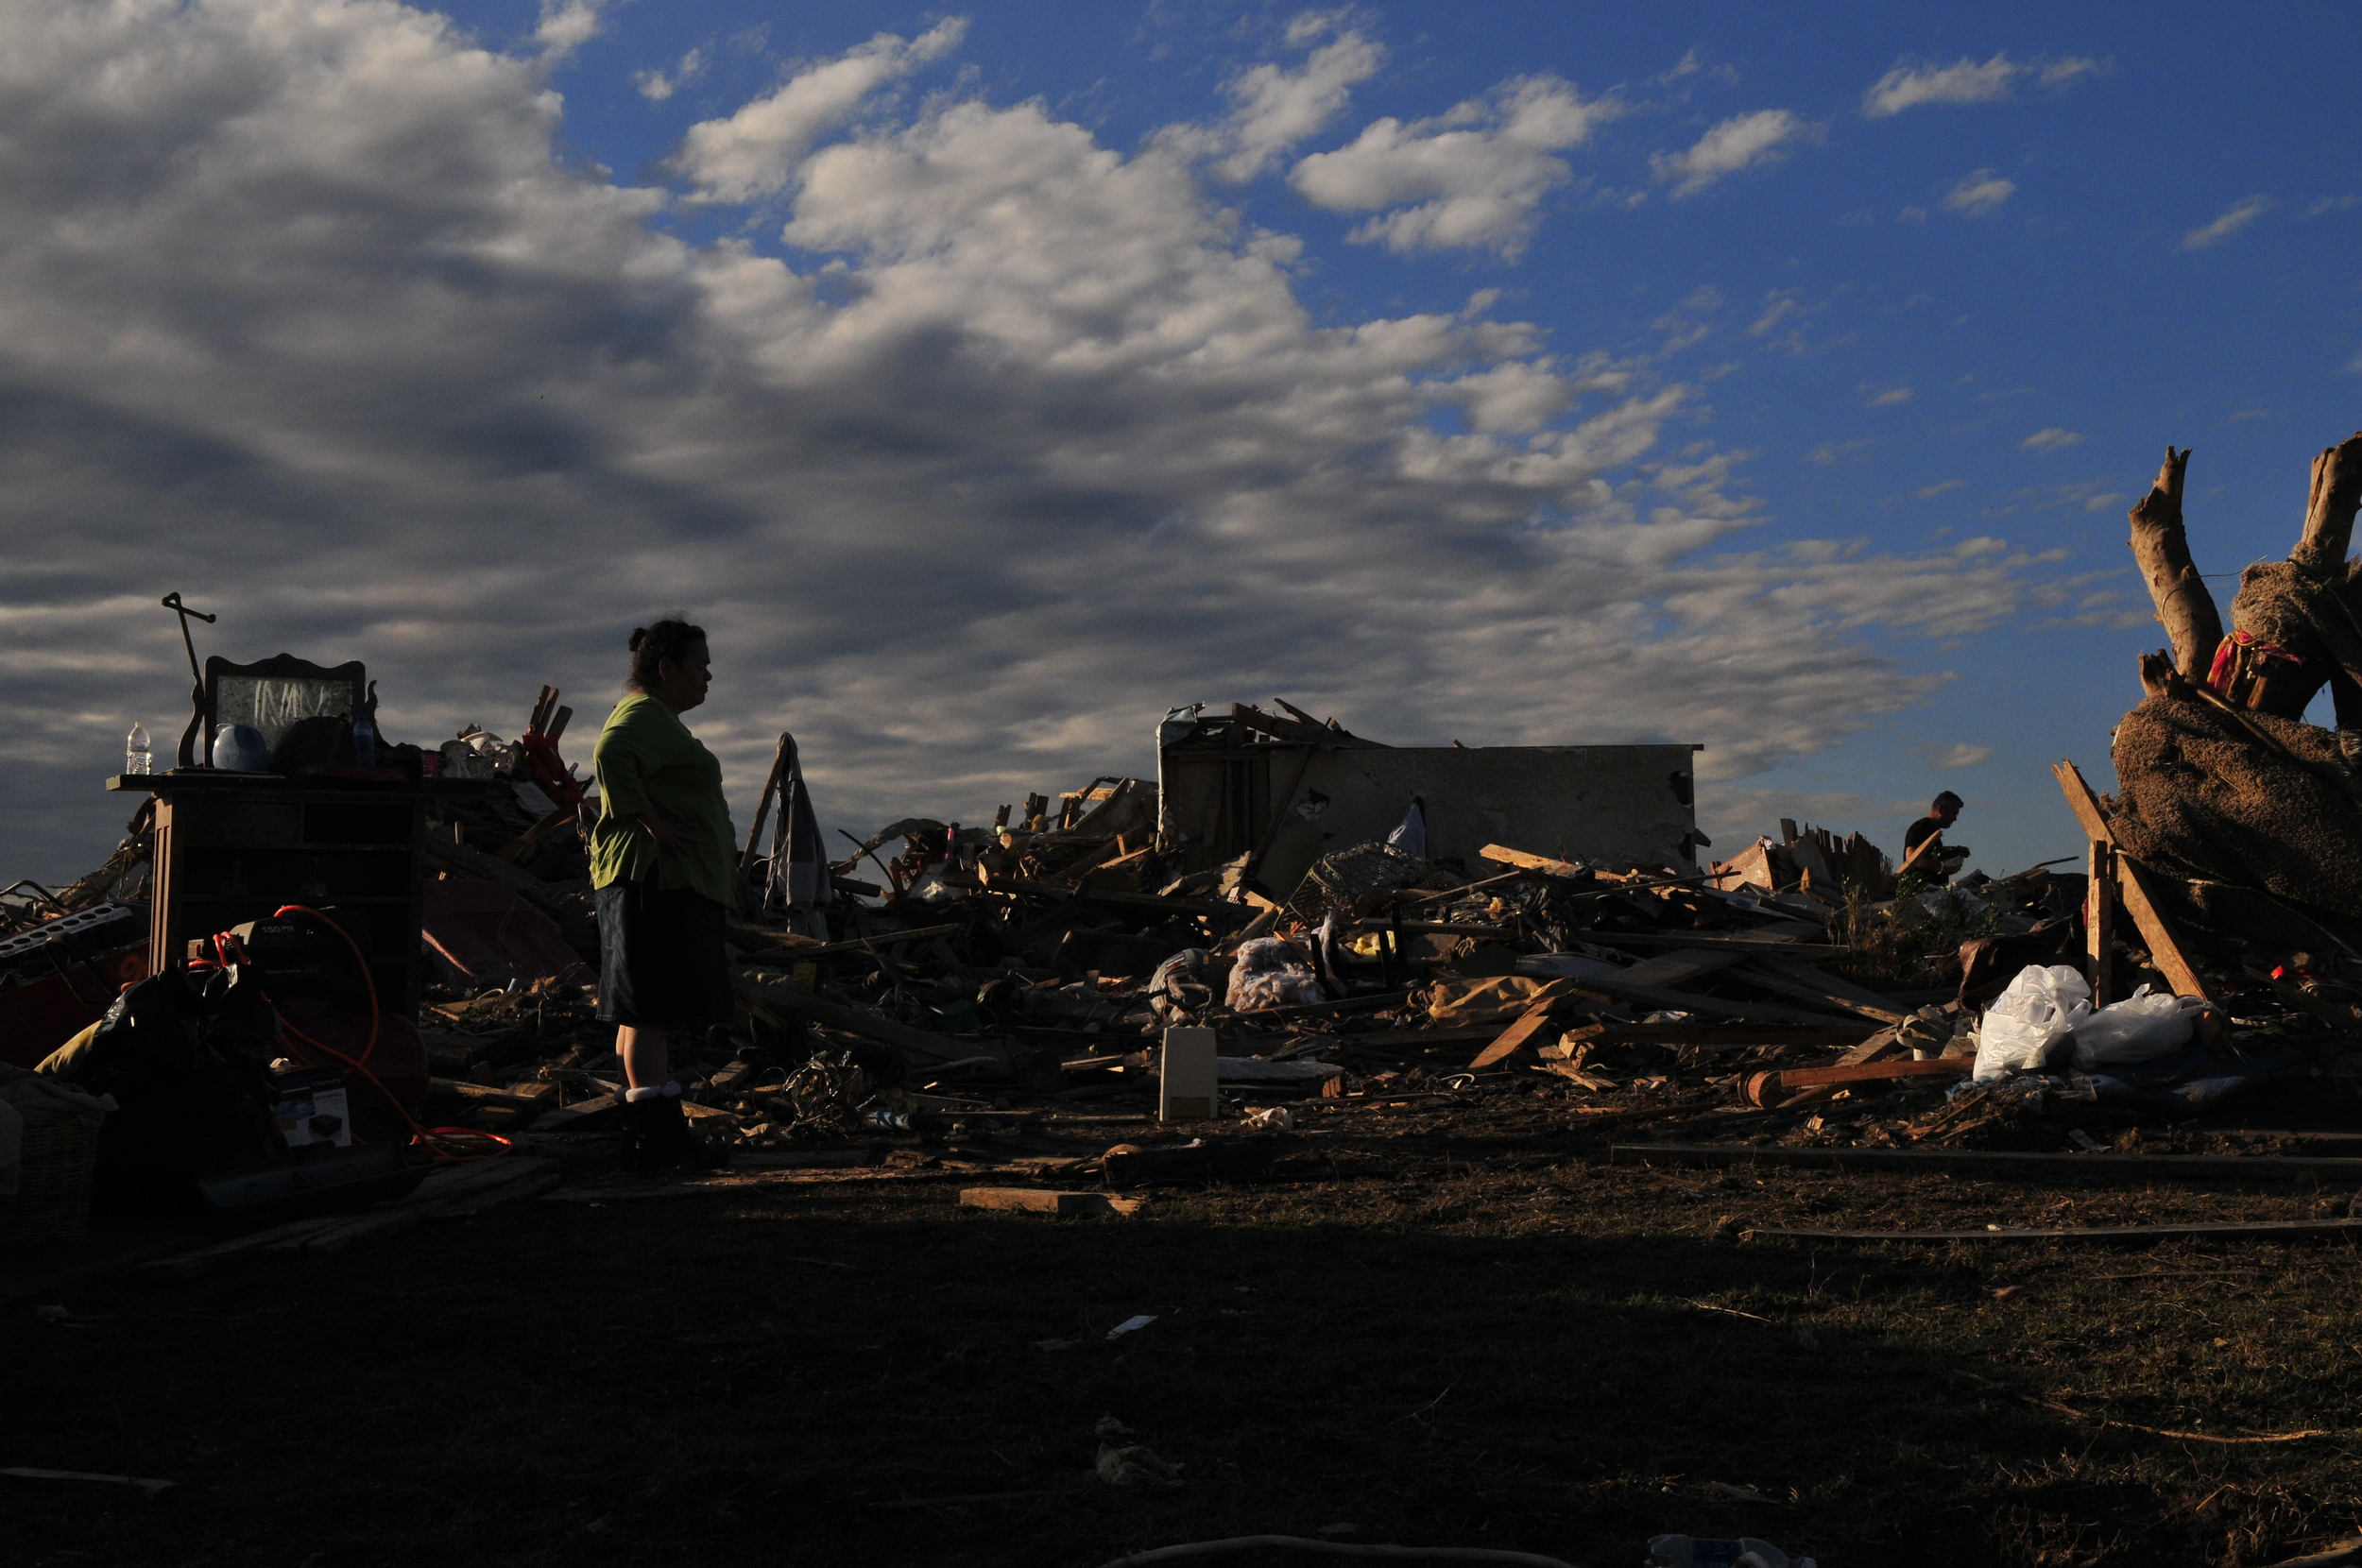 Joyce Moreno stands out front of her brother Gerald's home that was in the direct path of yesterdays EF5 tornado on May 21, 2013 in Moore Oklahoma.